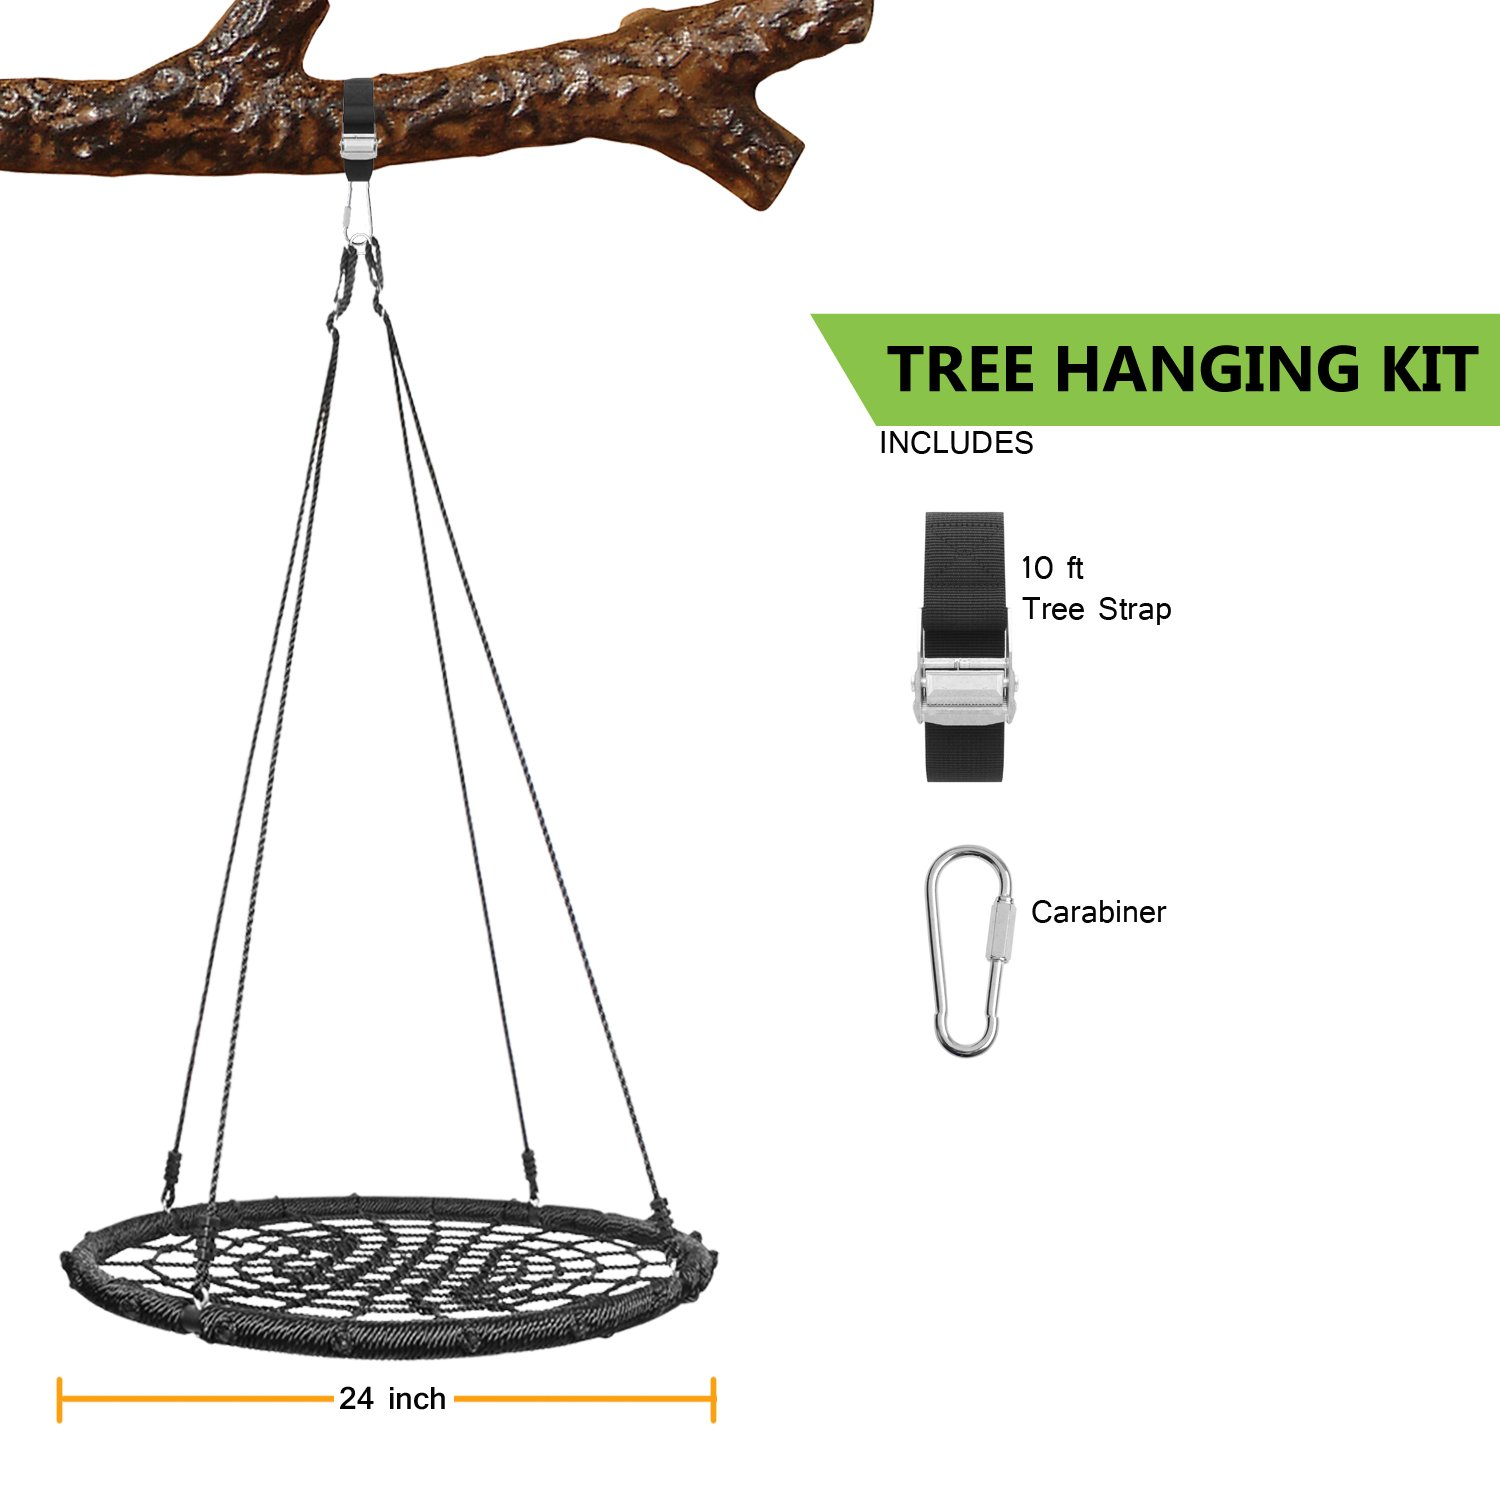 KHOMO GEAR Complete Set Includes Tree Swing Hanging Kit Extra Large 24 Diameter Swing /& Spin Set